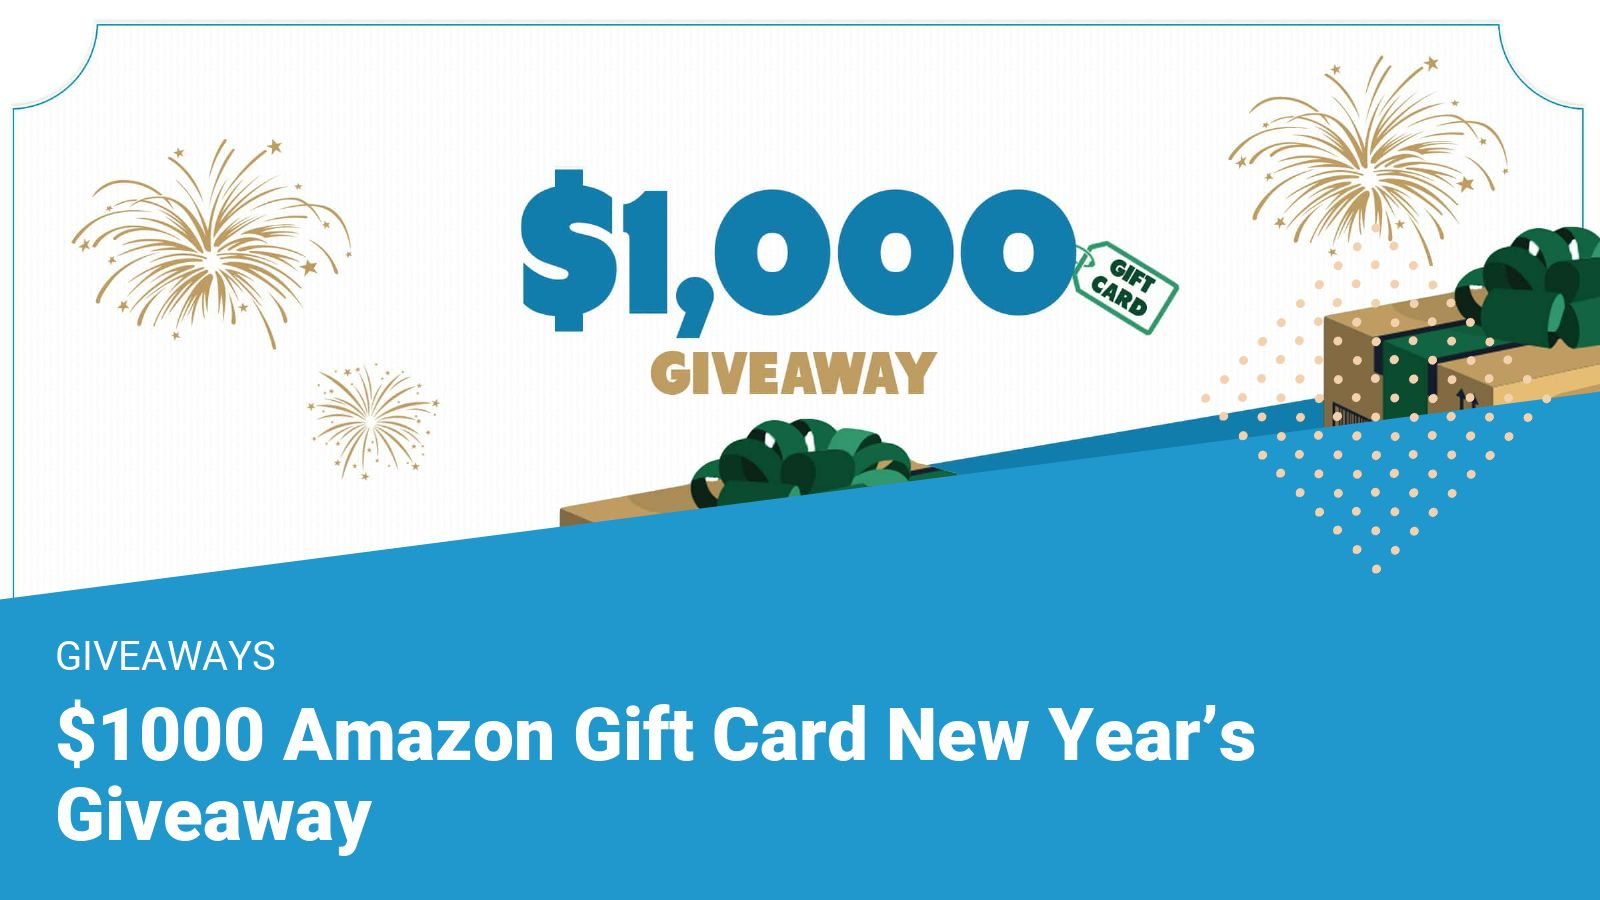 contest of 1000 dollar gift card giveaway for new year 2020